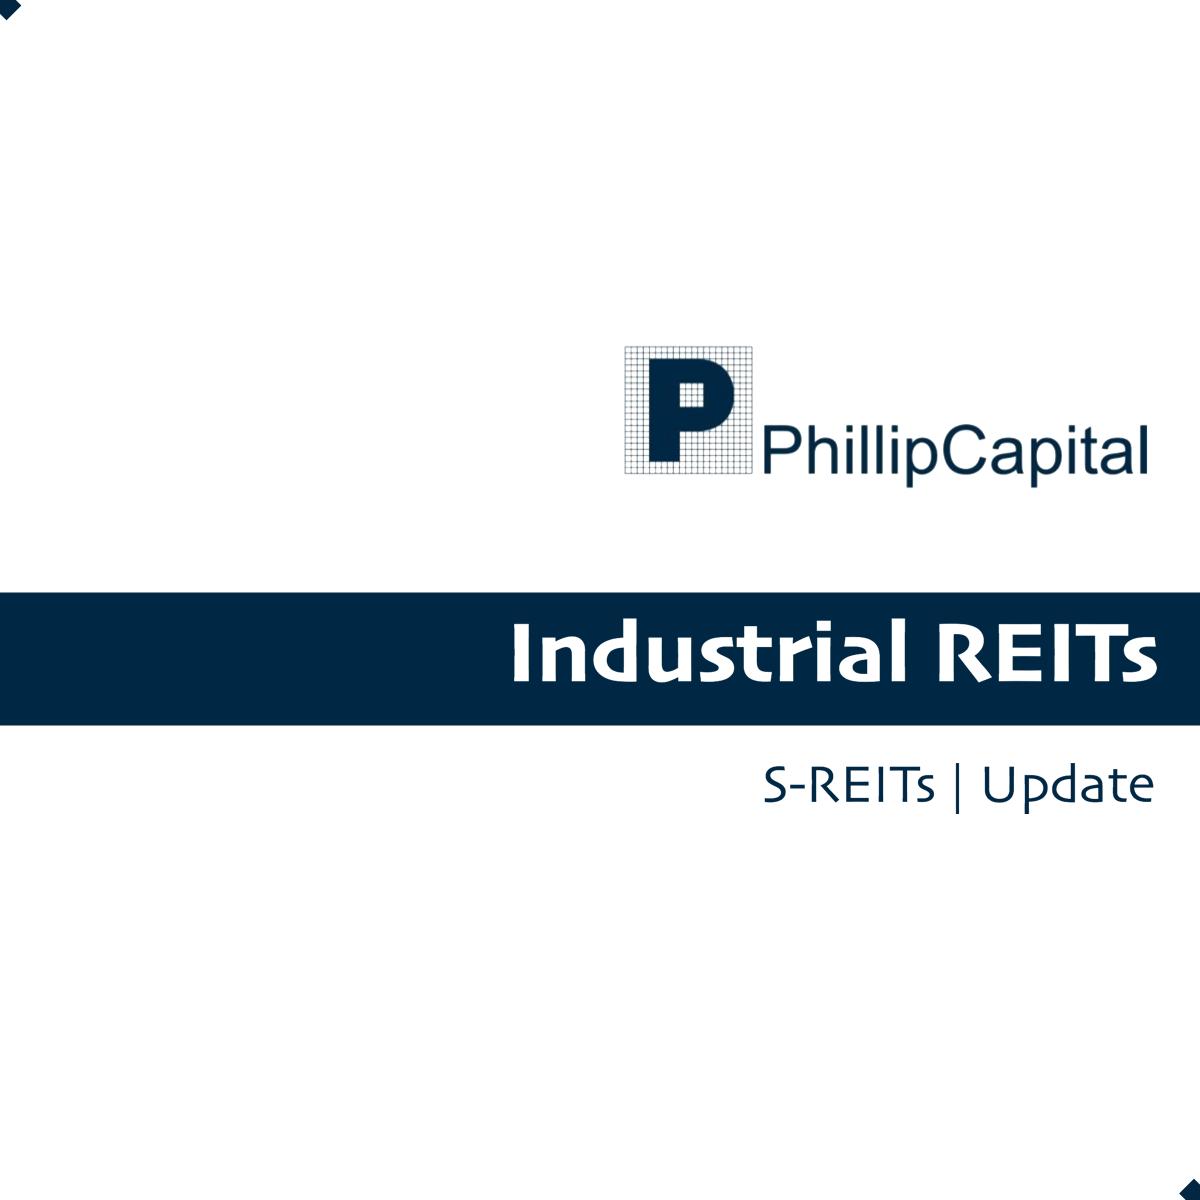 Singapore Industrial REITs - Phillip Securities 2018-02-12: Tailwind Of Tapering New Supply This Year